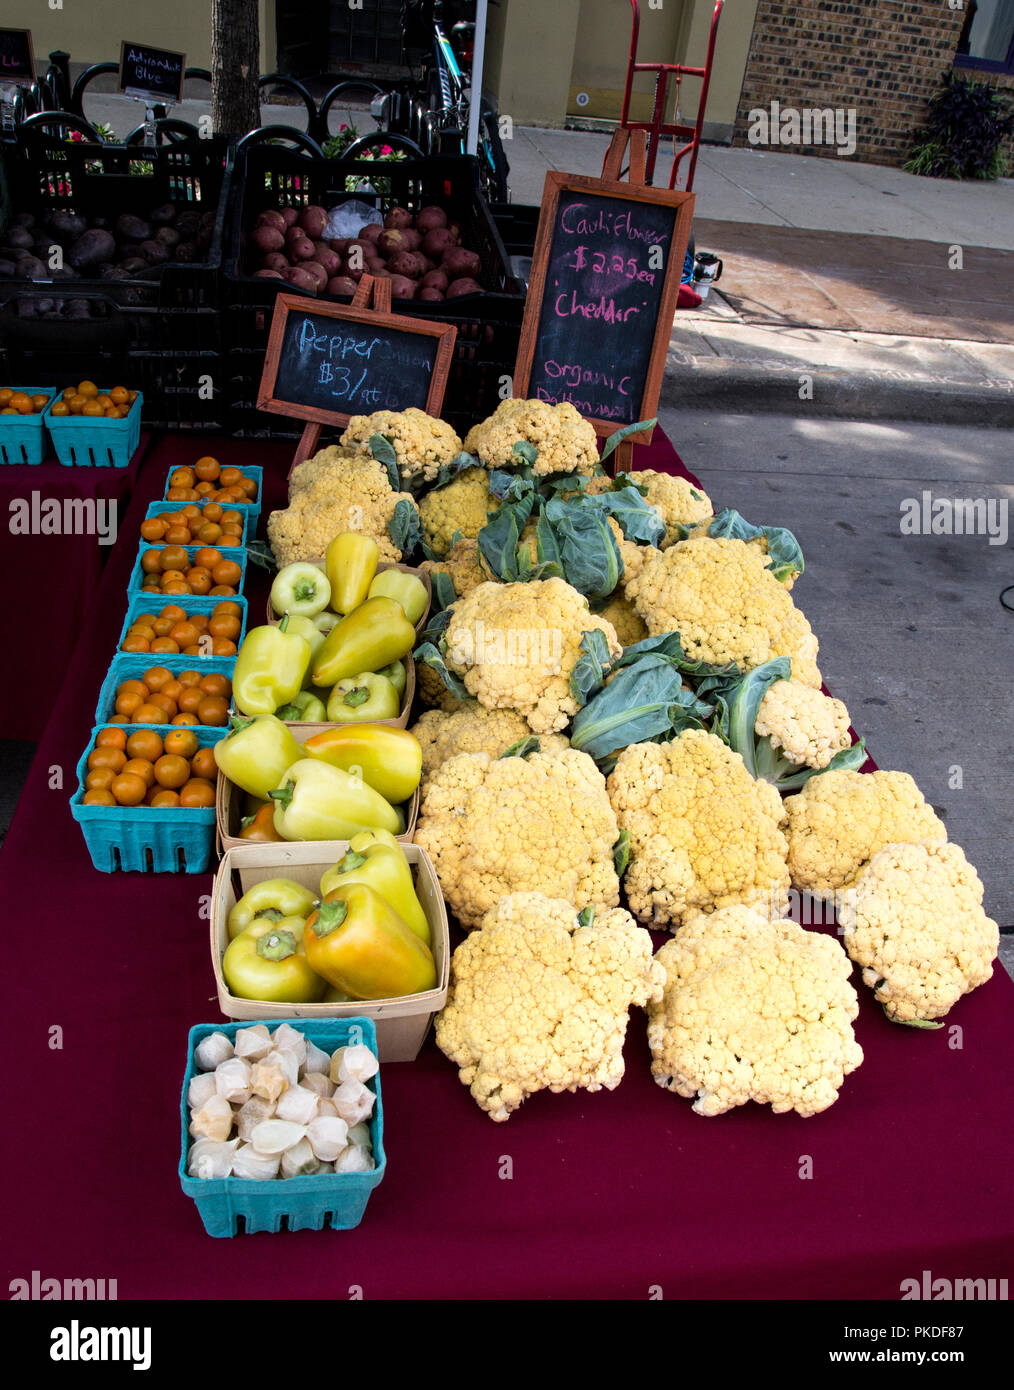 Farmers market in Appleton Wisconsin with a display of 'Cheddar' cauliflower - Stock Image